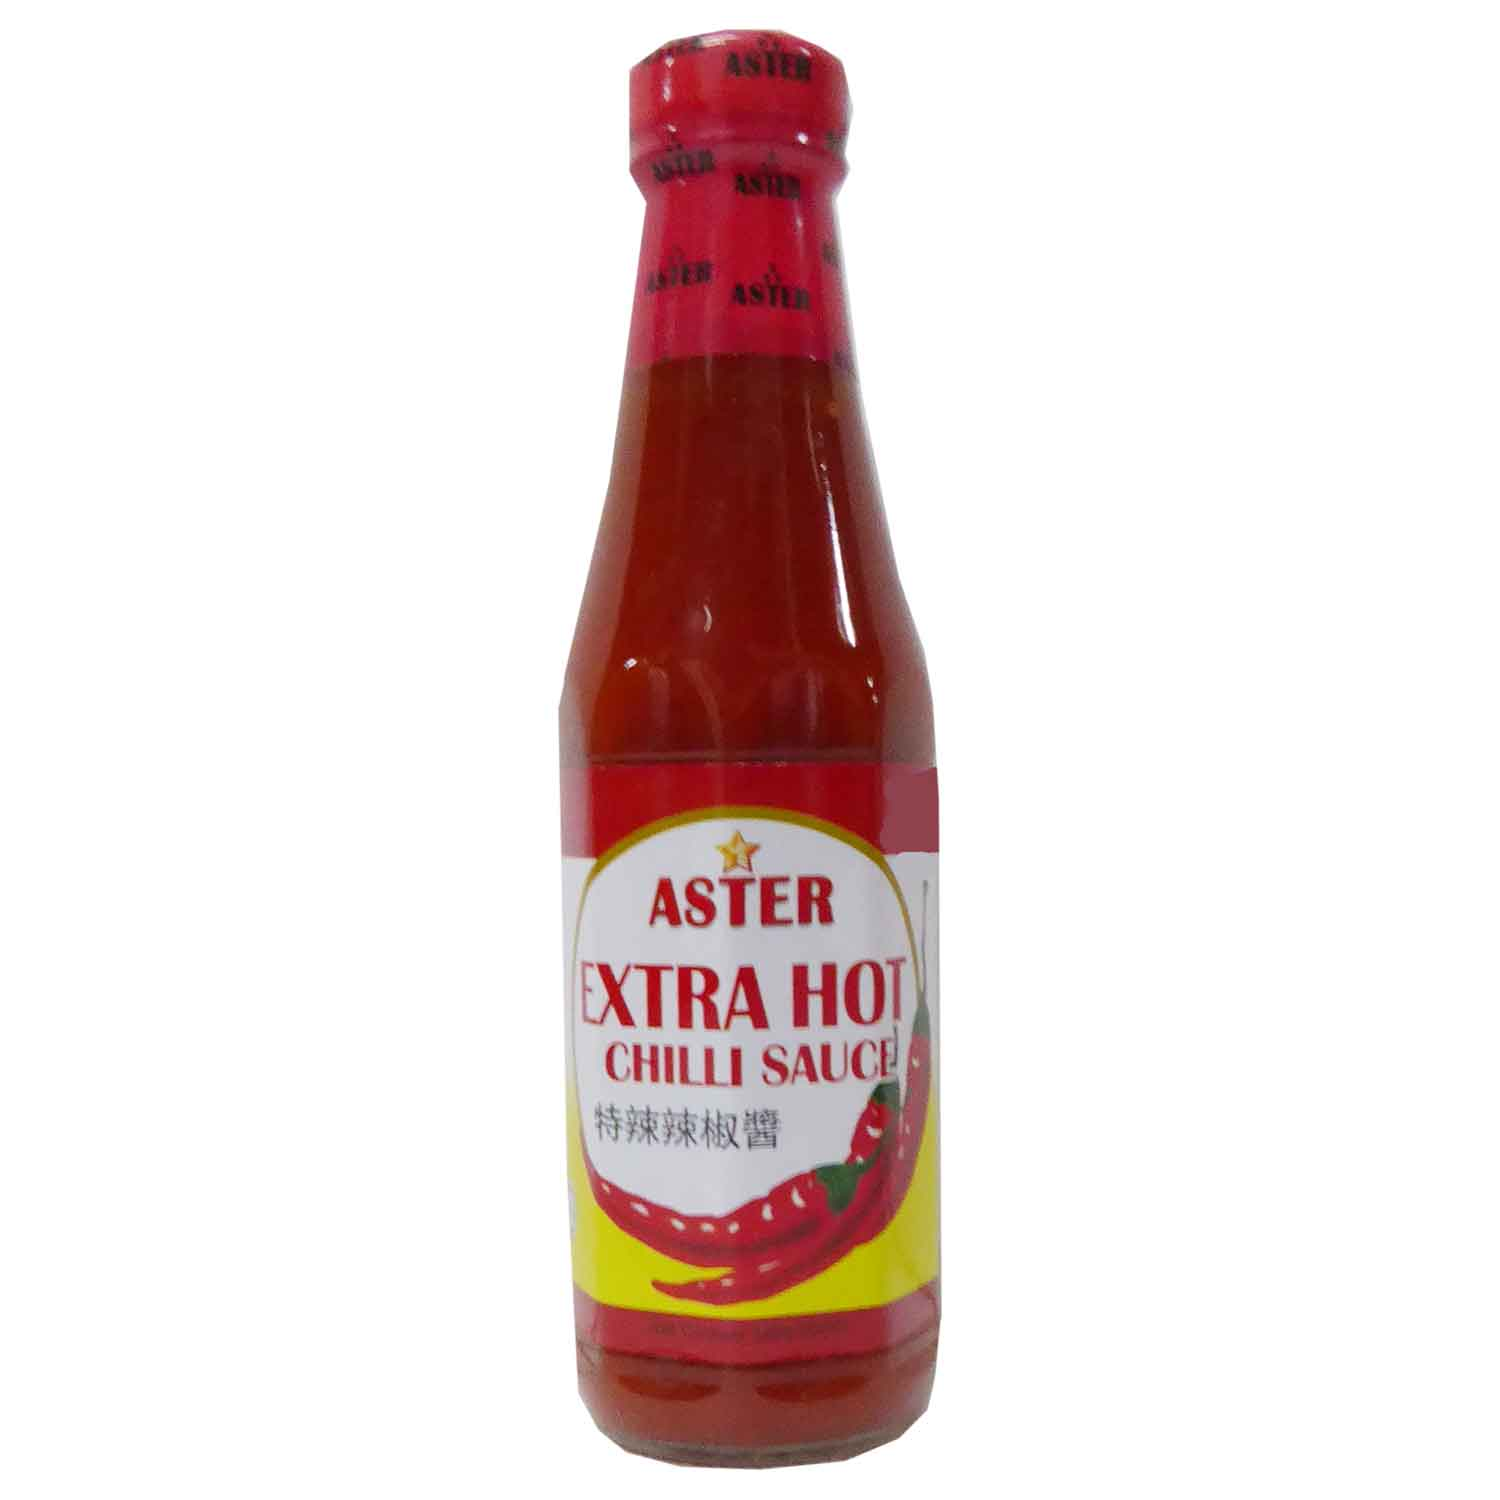 Aster Extra Hot Chilli Sauce